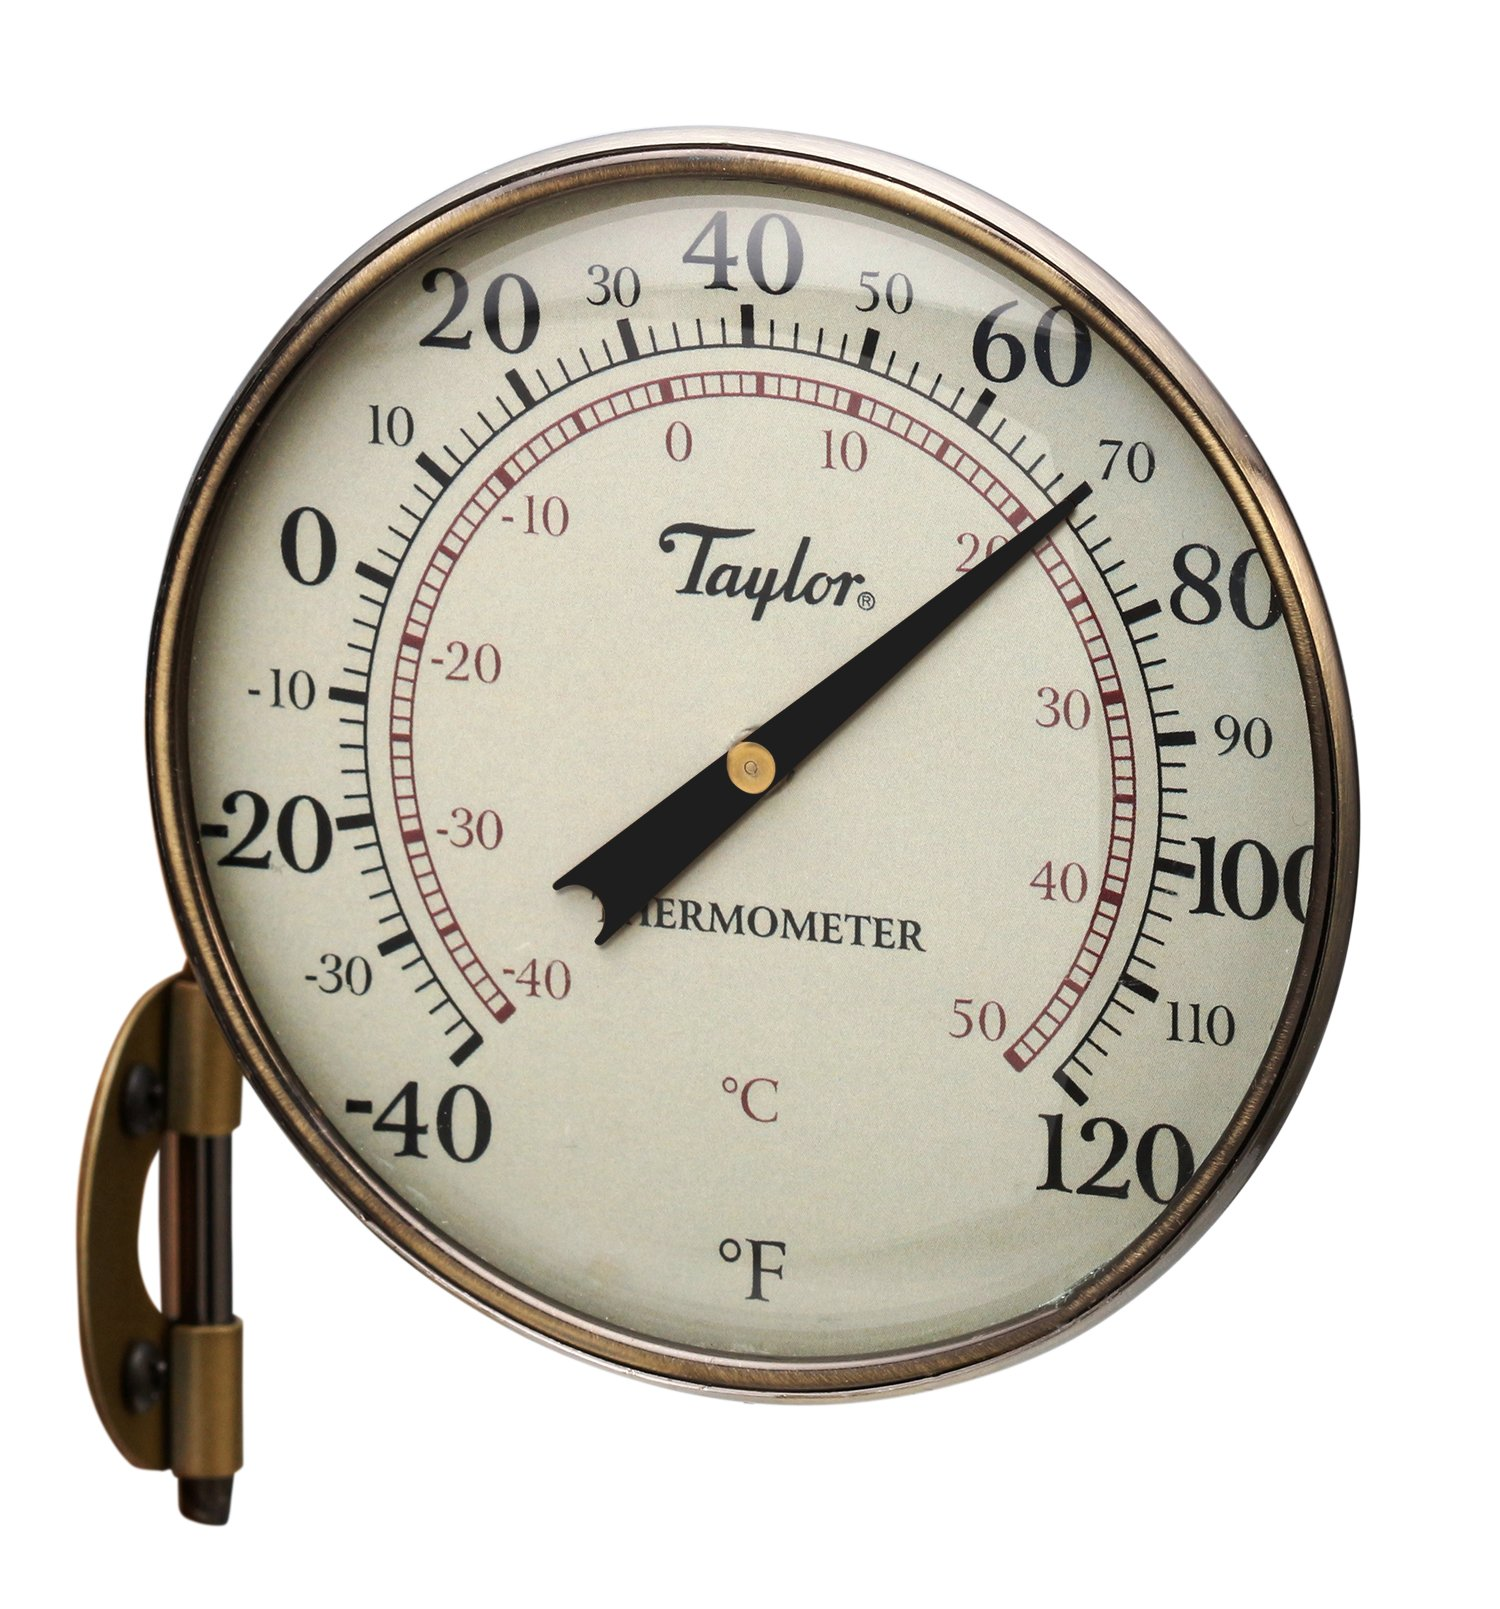 Taylor Precision Products Heritage Metal Dial Thermometer (4.25-Inch)